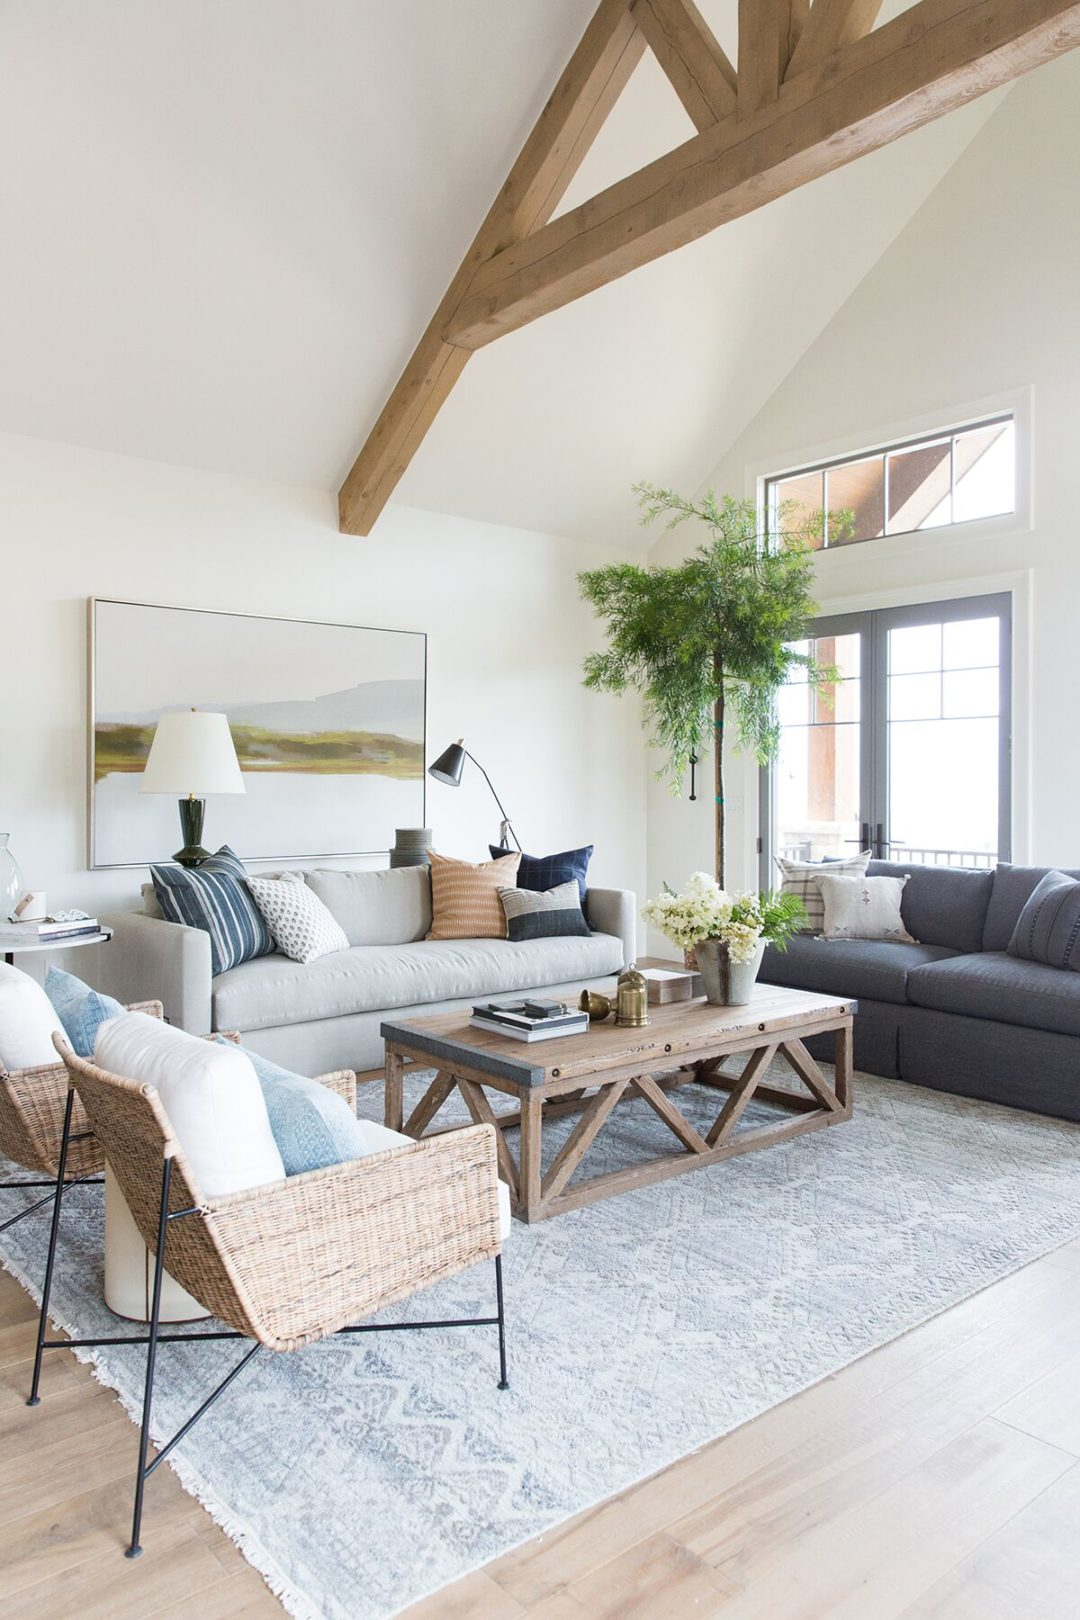 35 Rustic Living Room Ideas Modern Farmhouse And Chic Decor